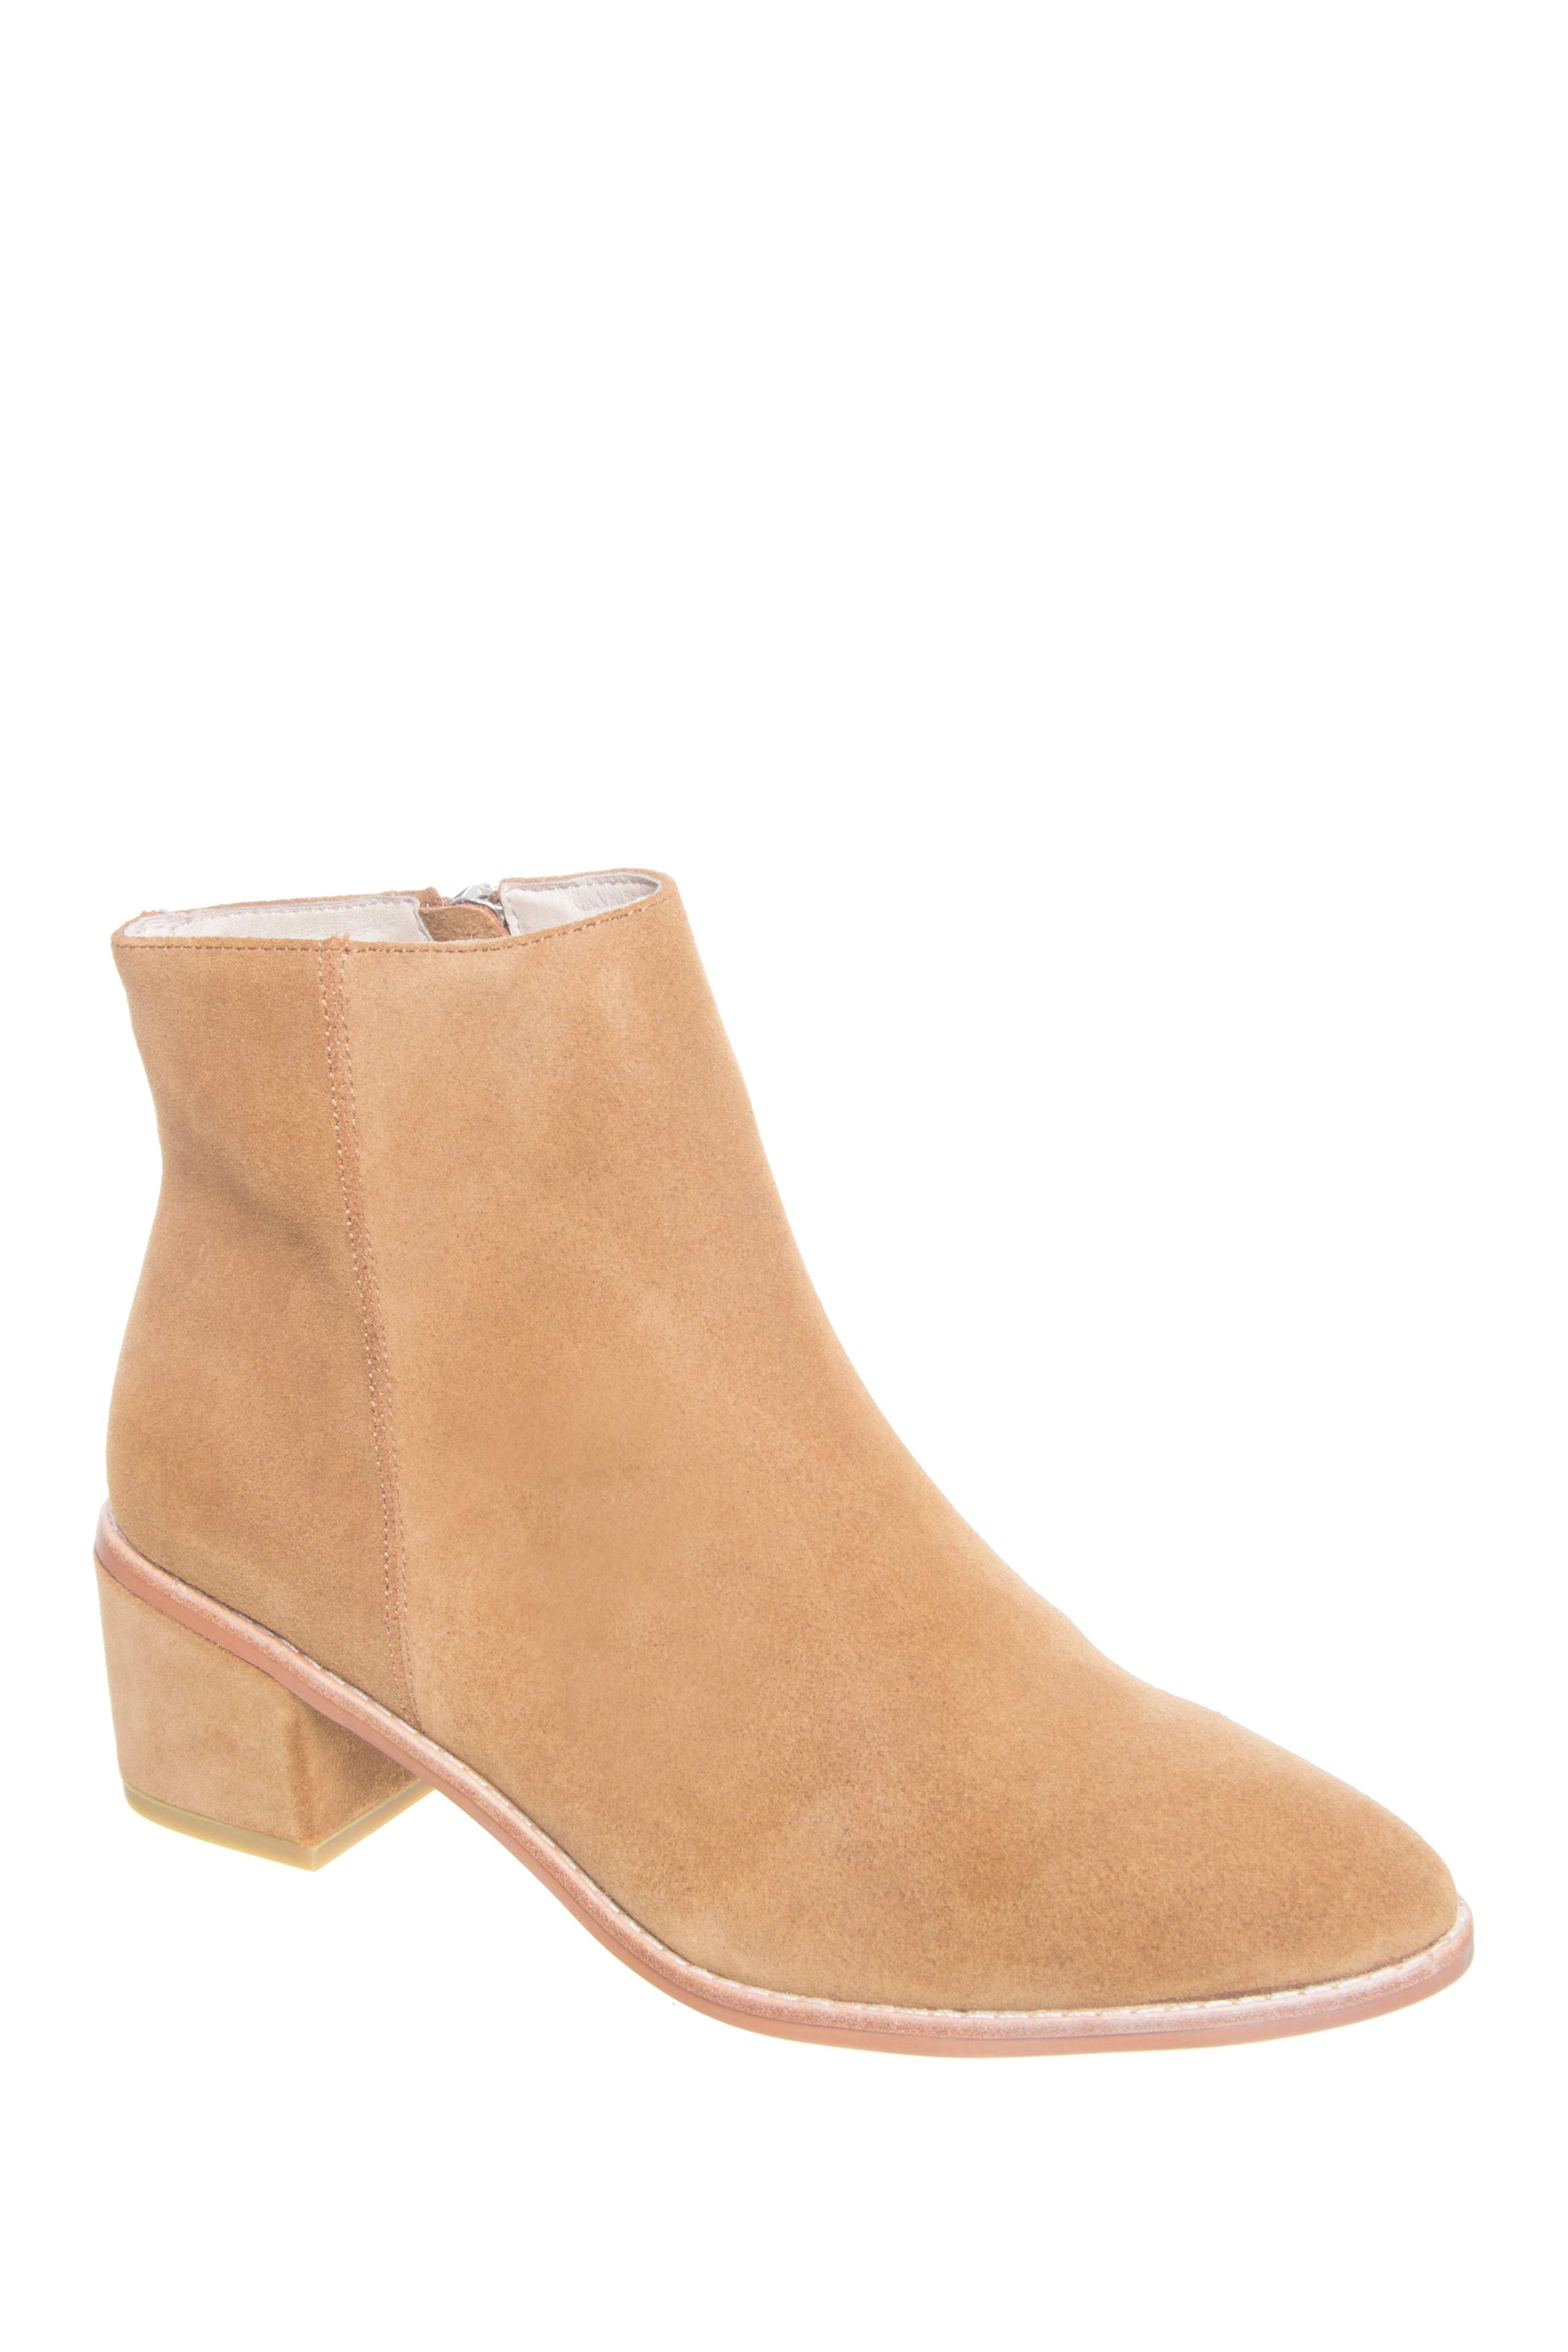 Sol Sana Miles Zip Up Booties - Cognac Suede